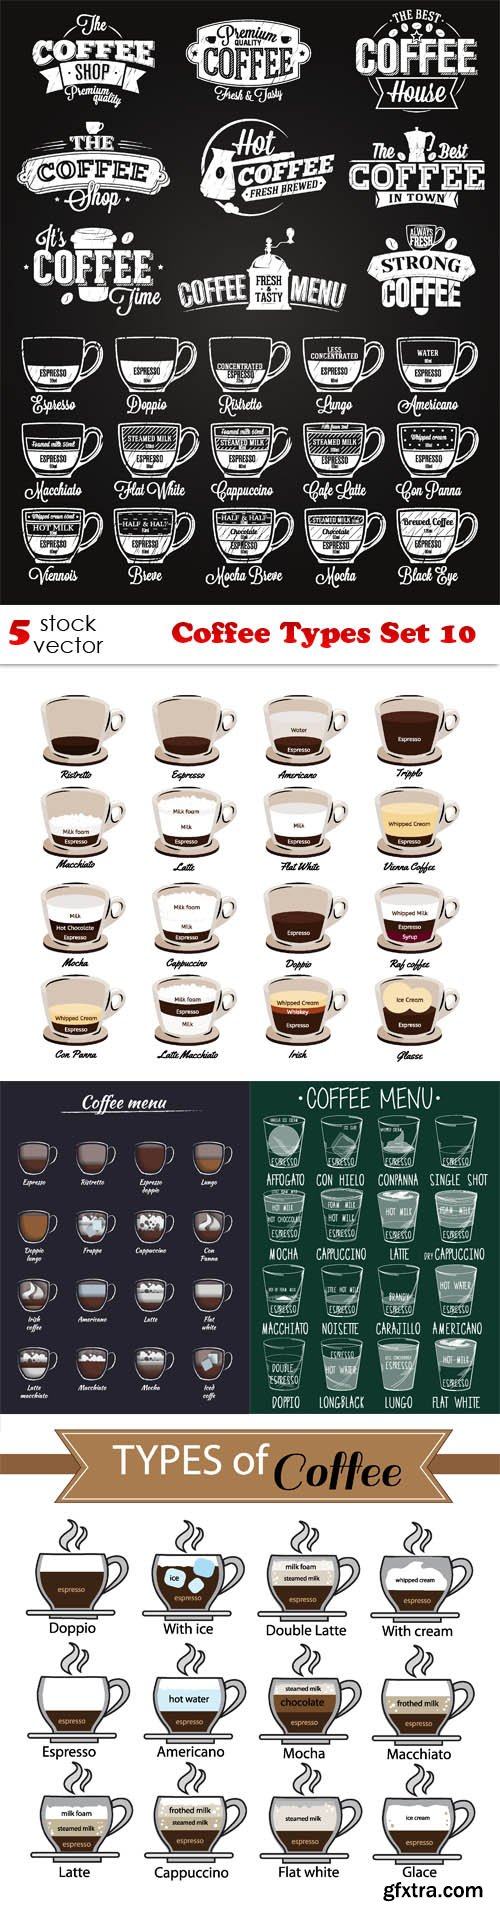 Vectors - Coffee Types Set 10